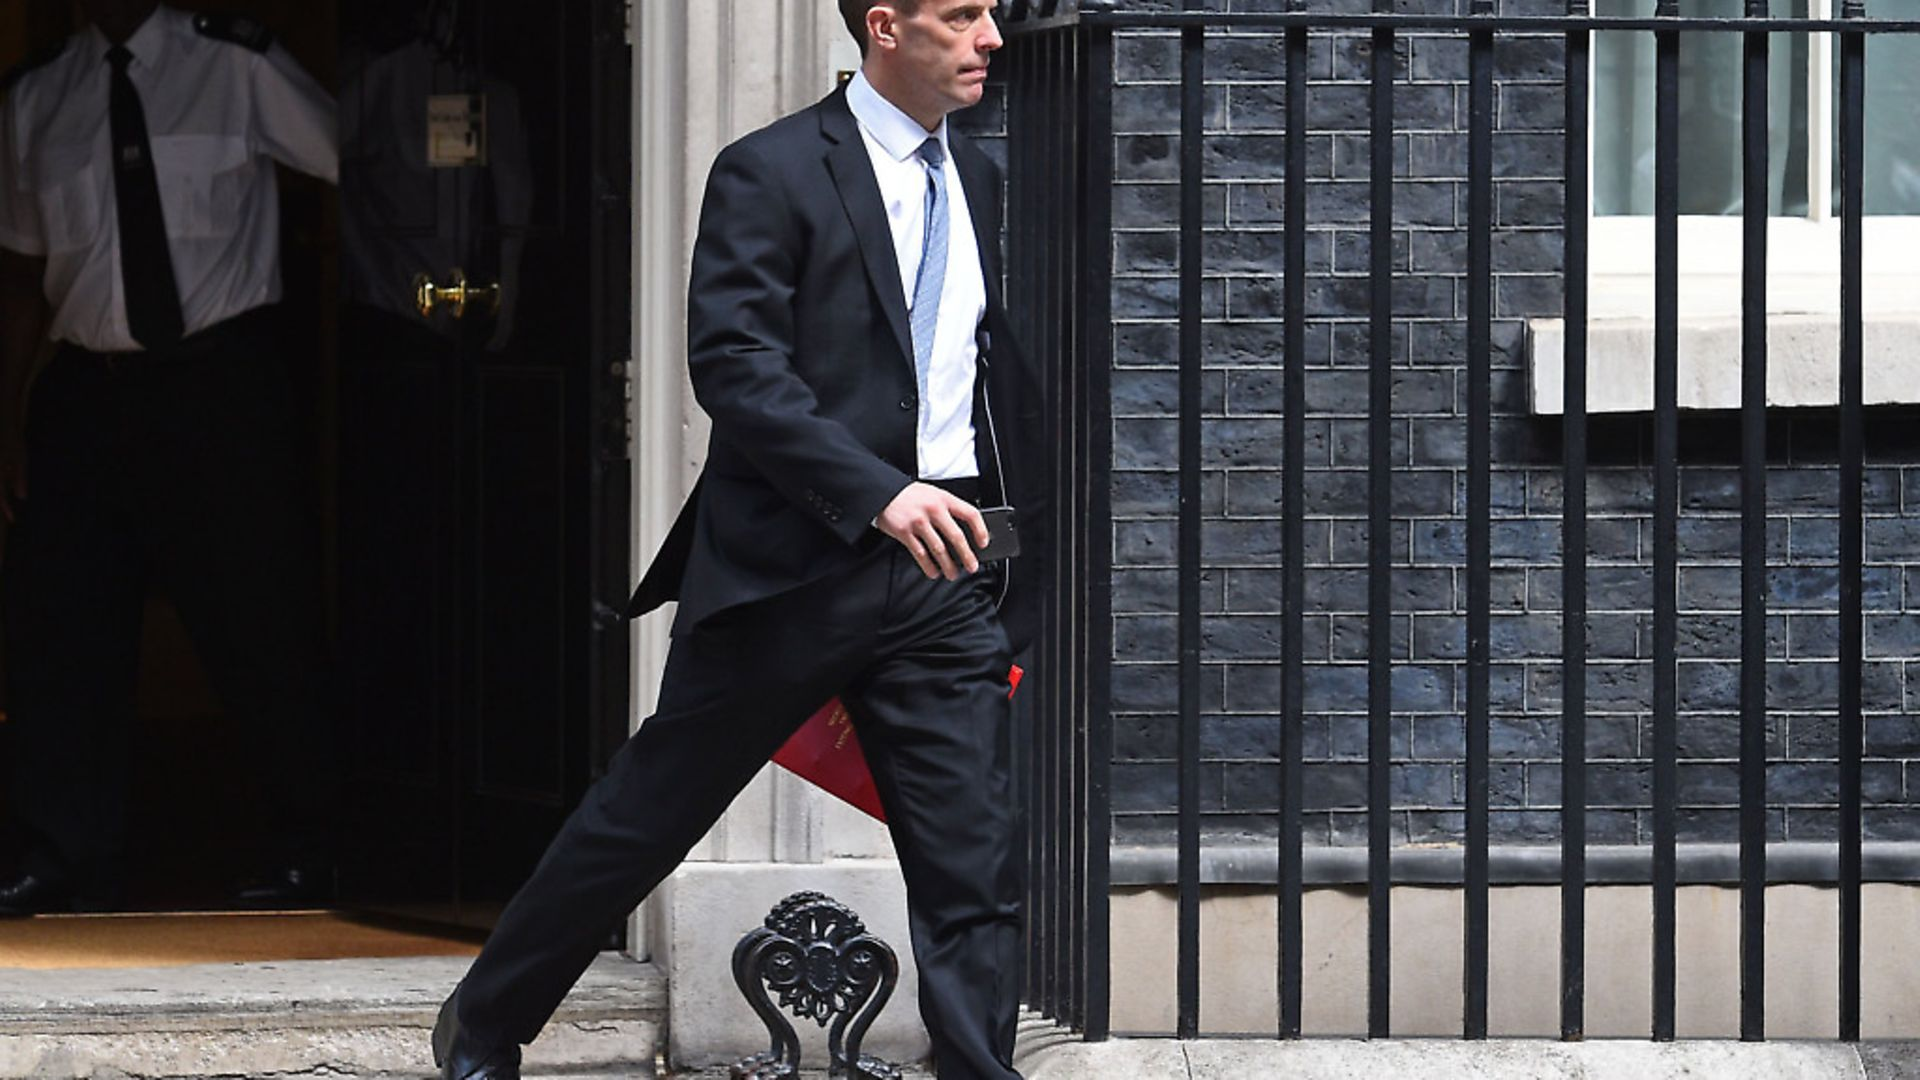 Dominic Raab has admitted the cabinet is still not united over the Chequers agreement Photo: PA / Kirsty O'Connor - Credit: PA Wire/PA Images